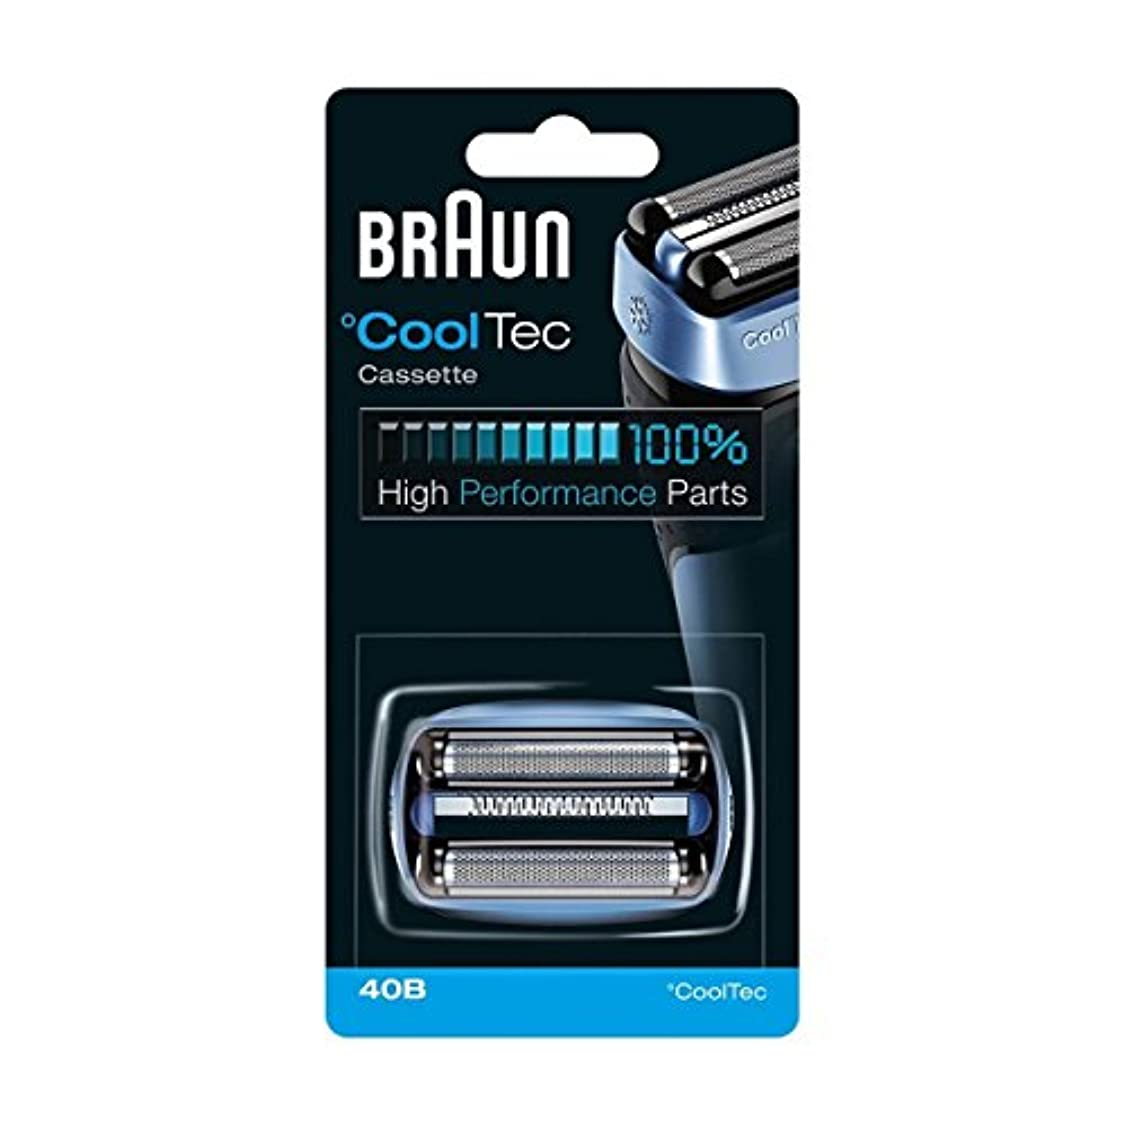 【並行輸入品】BRAUN 40B Foil and Cutter Replacement Cartridge for CoolTec shavers series